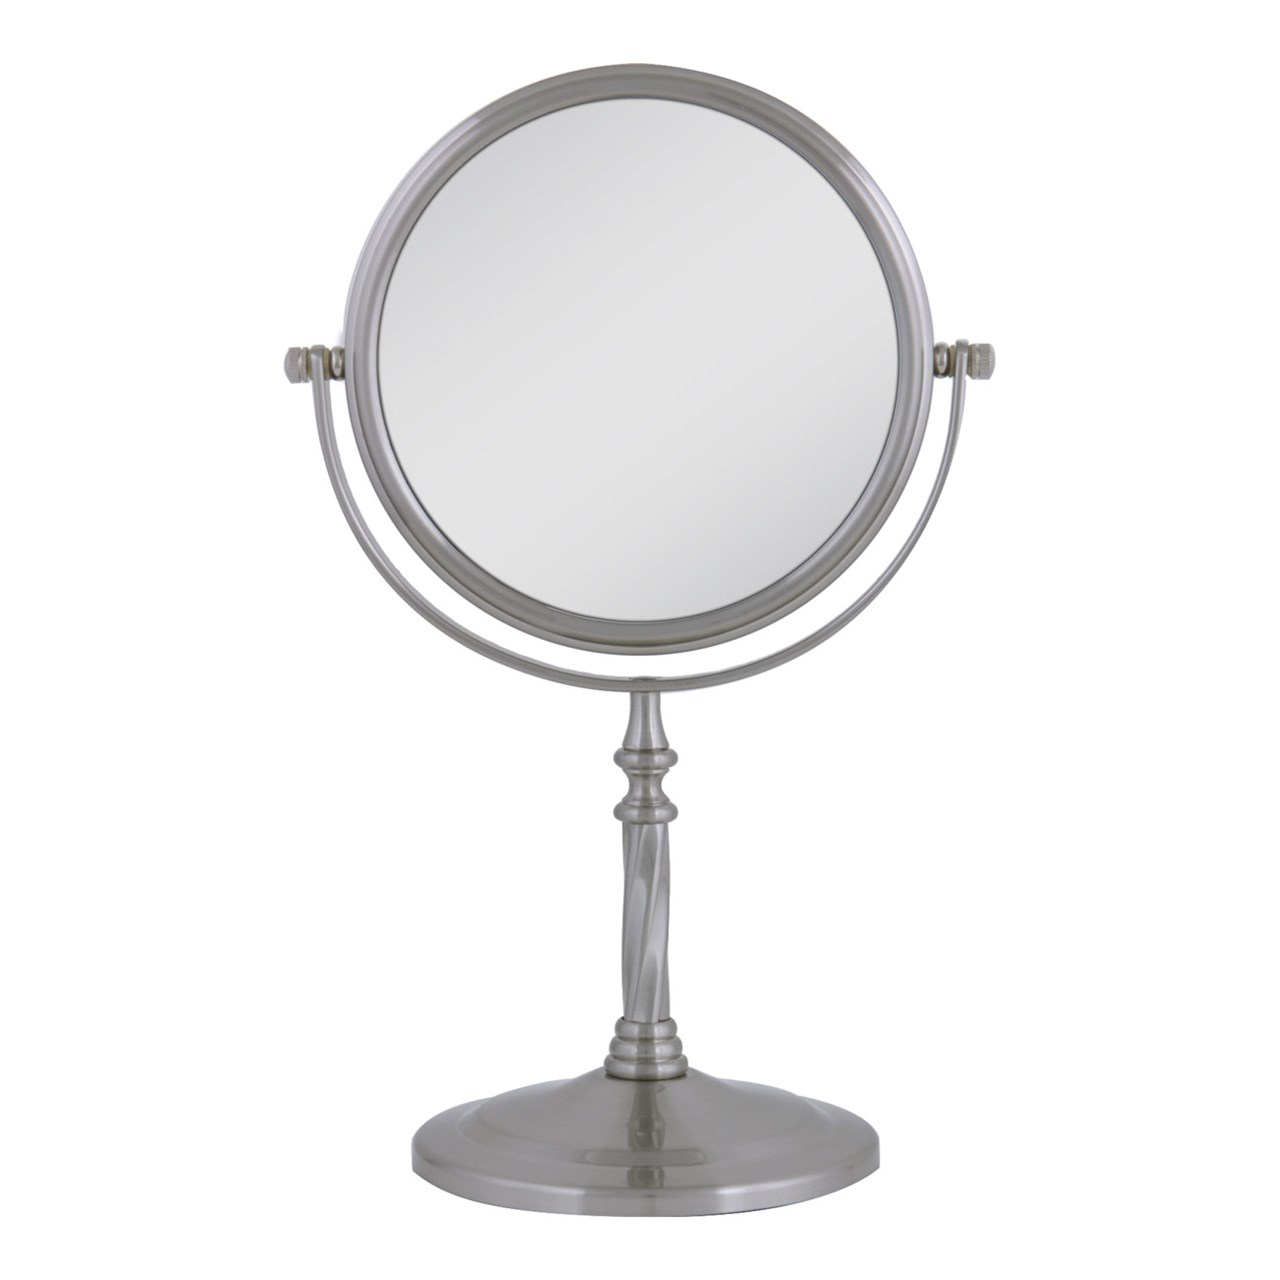 Maxiaids Swivel Vanity Mirror